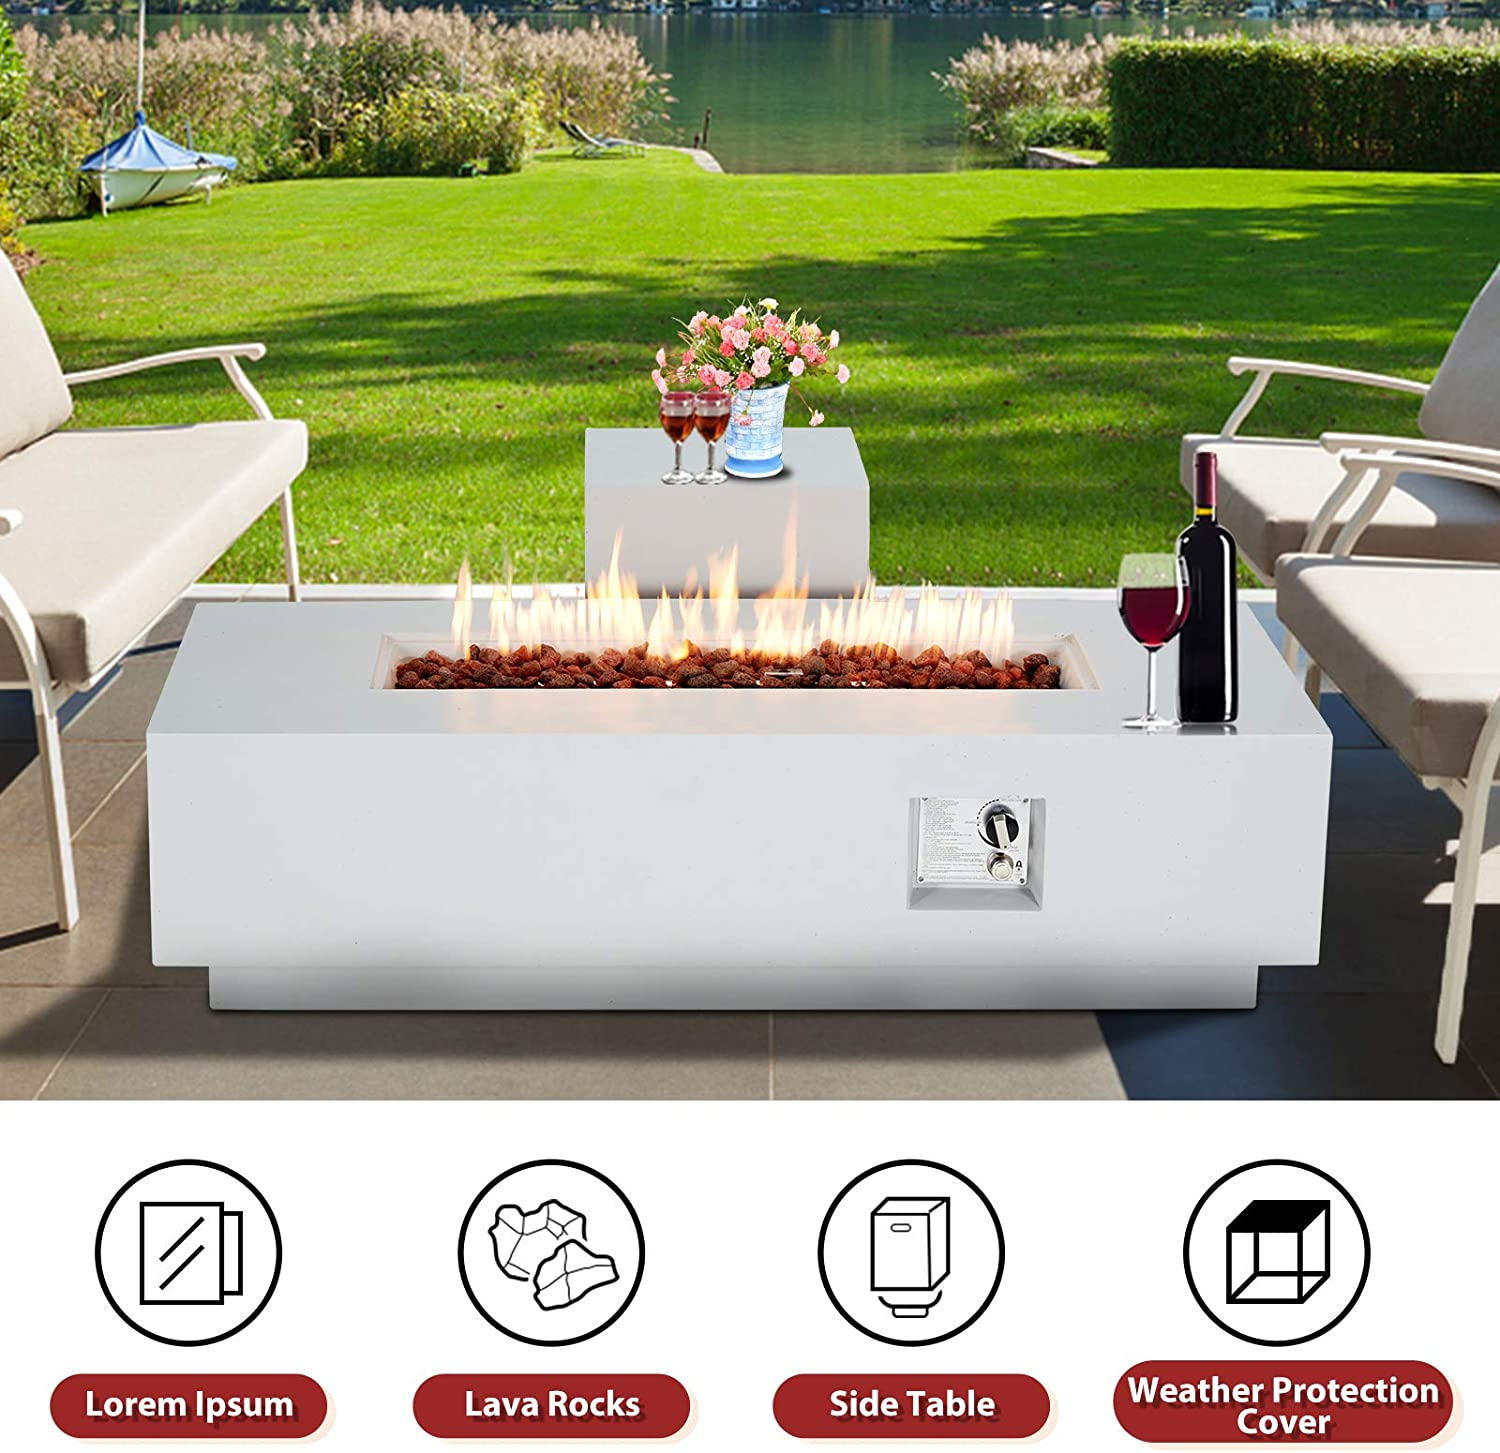 ECOTOUGE 2-Piece 56Inch Outdoor Propane Fire Pit Table Set with 20 Gallon Gas Tank Side Table w// Weather Rust-Resistant Cover 50,000 BTU Rectangular Concrete-Style Fire Table Outdoor Furniture